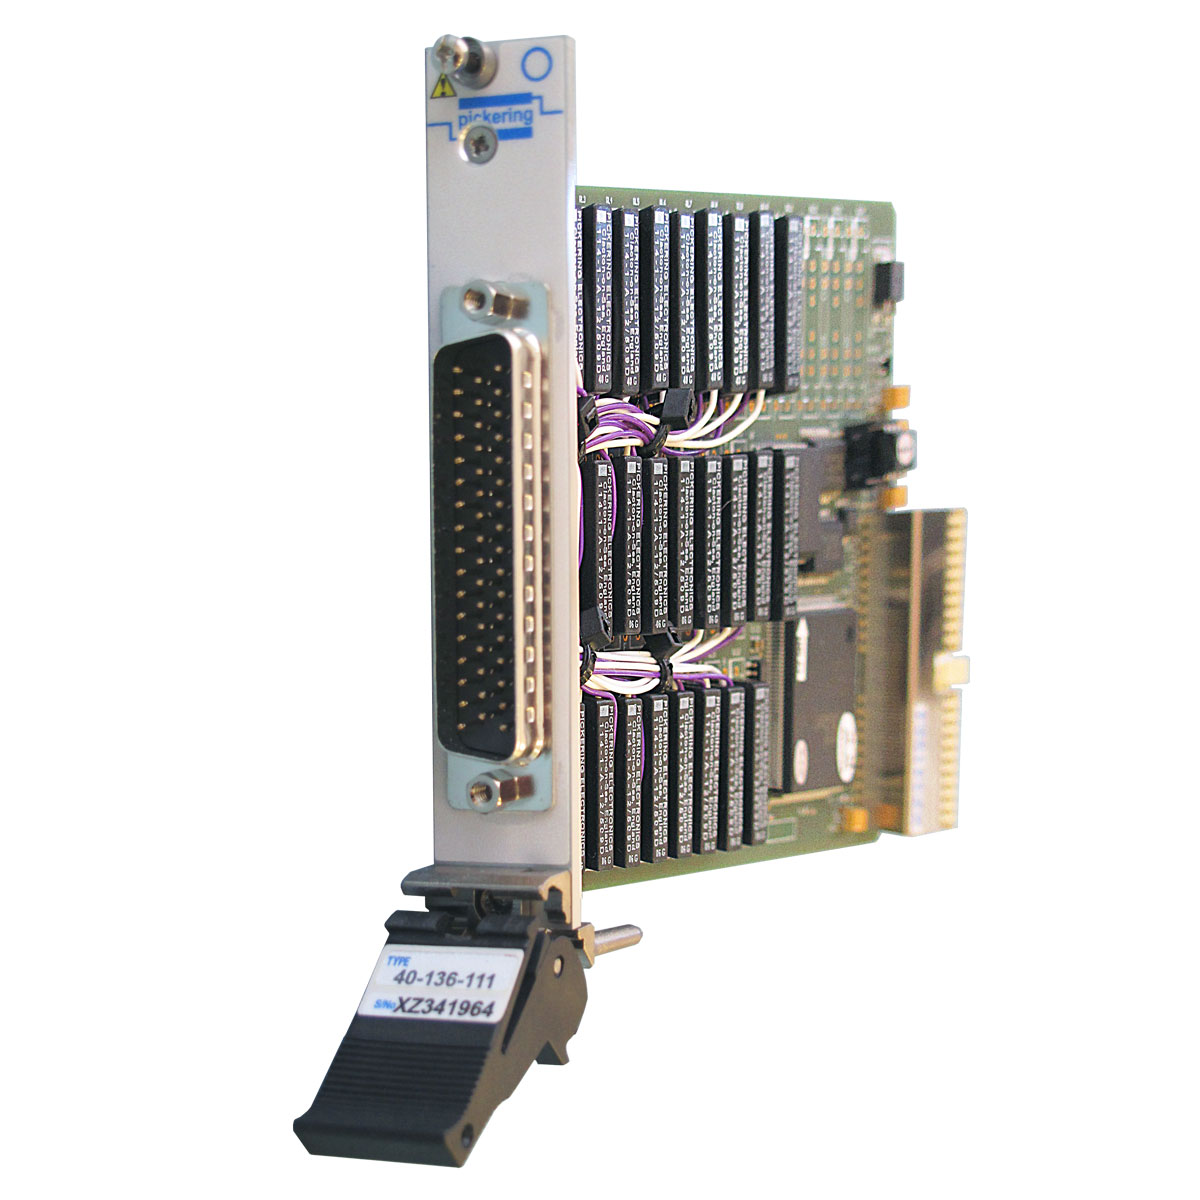 PXI 32 x SPST Reed Relay 2 Amp - 40-136-211